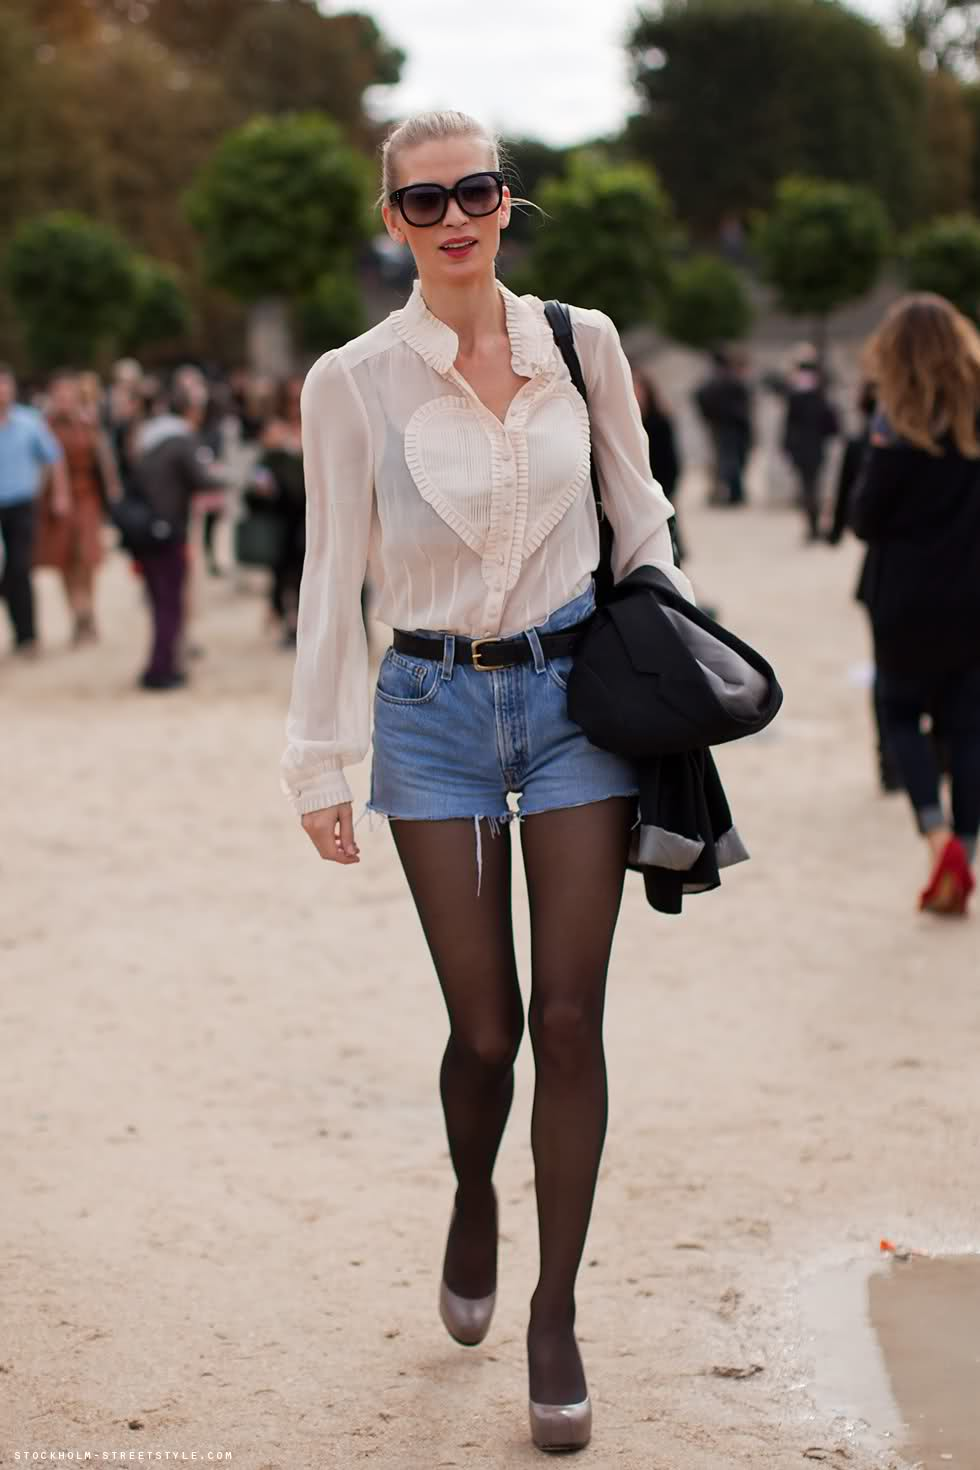 Models Off Duty Looks! Are Models The New Style Icons? u2013 The Fashion Tag Blog